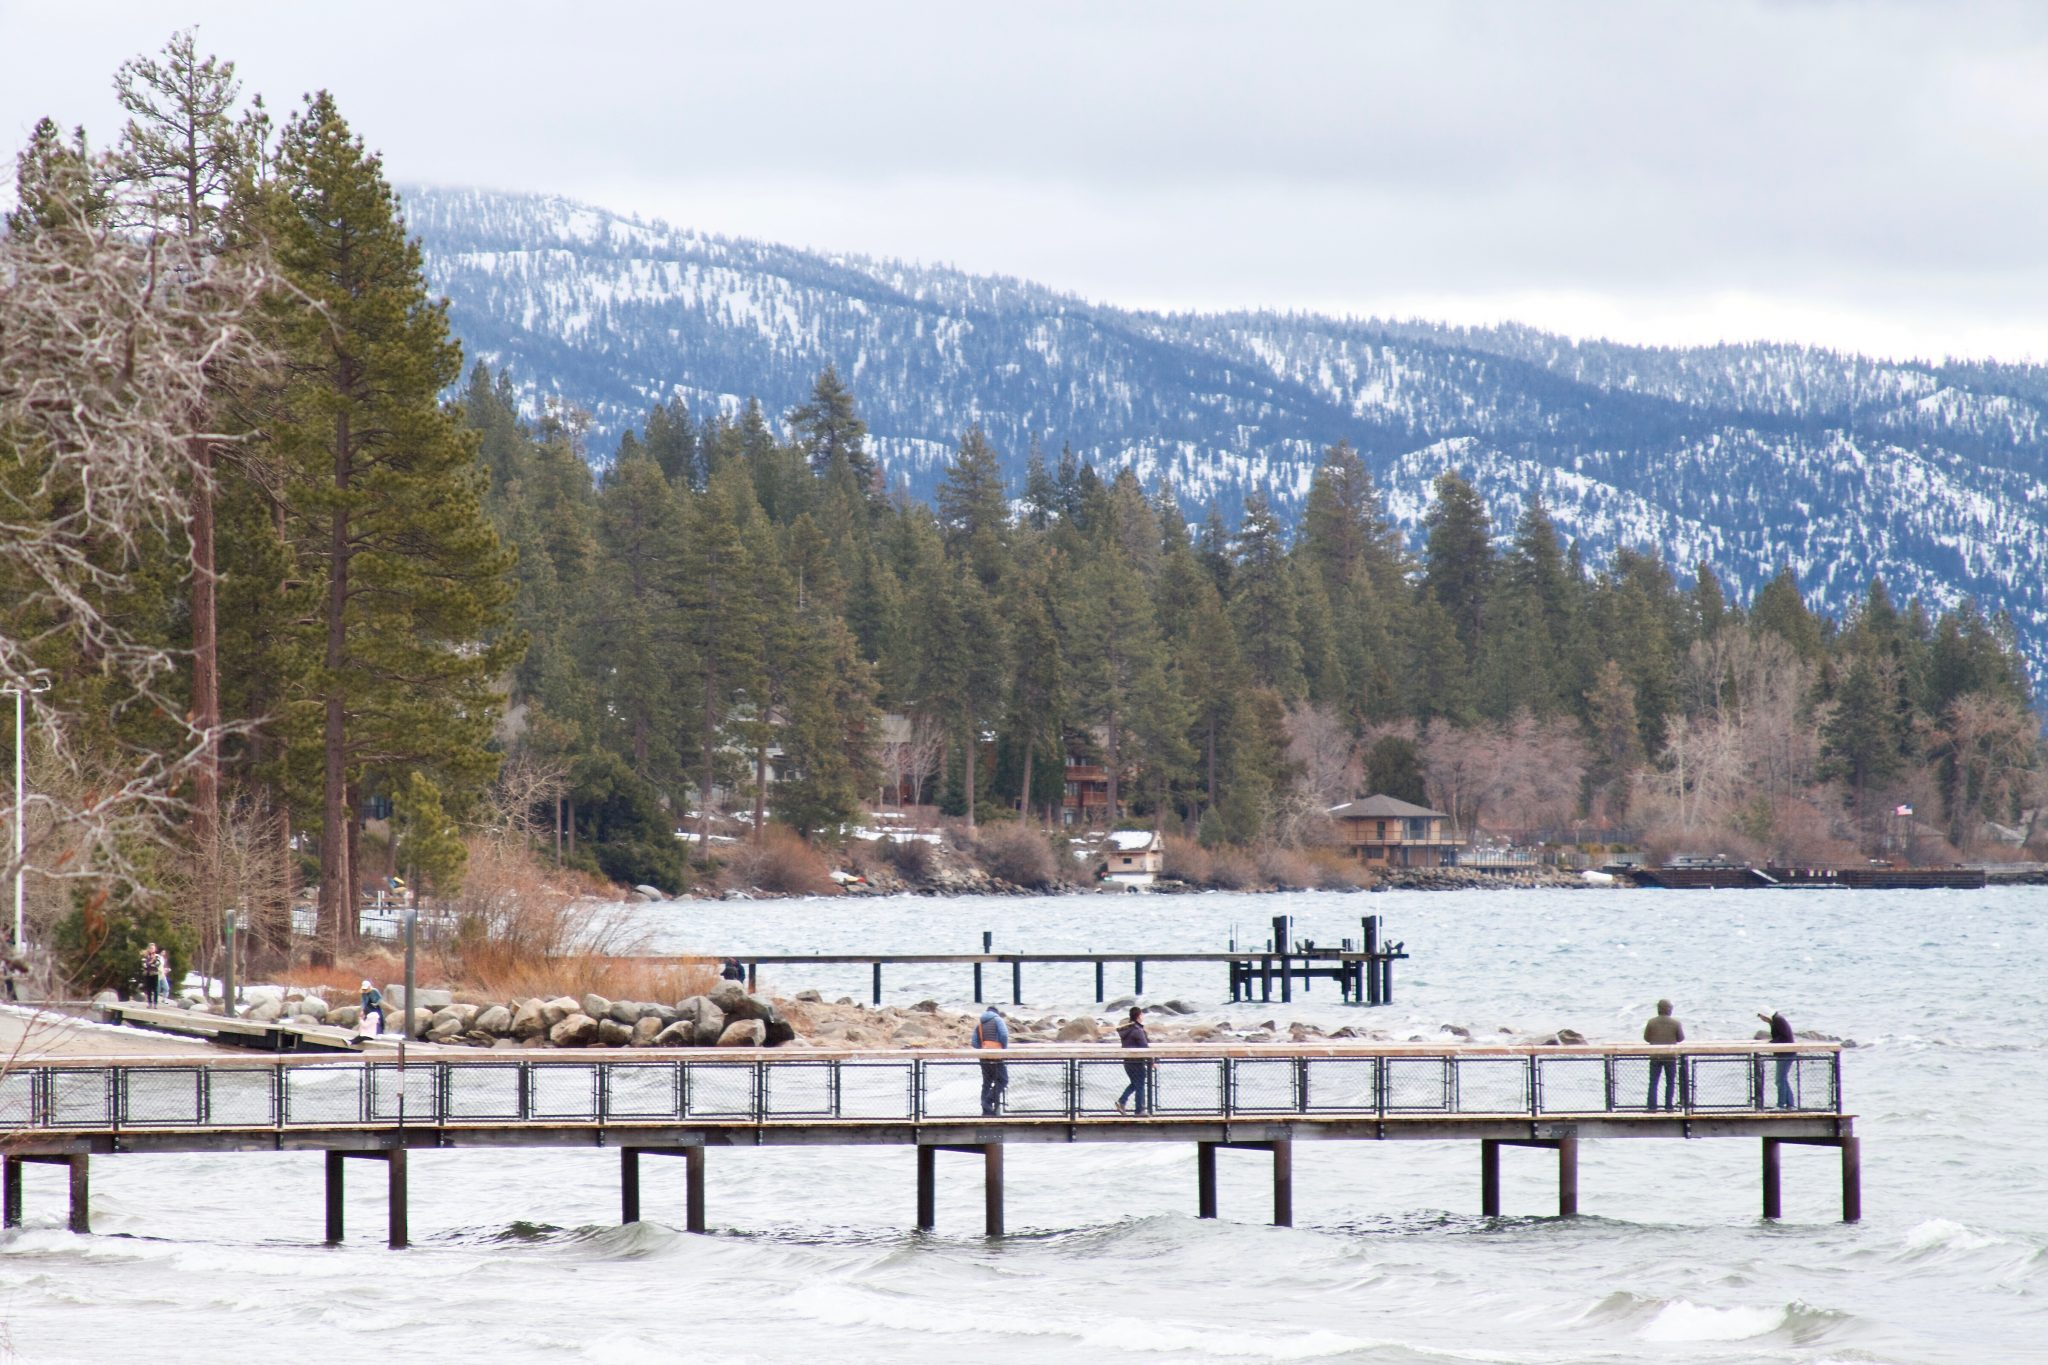 February 2017 - An epic, record snowfall winter season in the Lake Tahoe Area. Photo by Jamie Balaoro